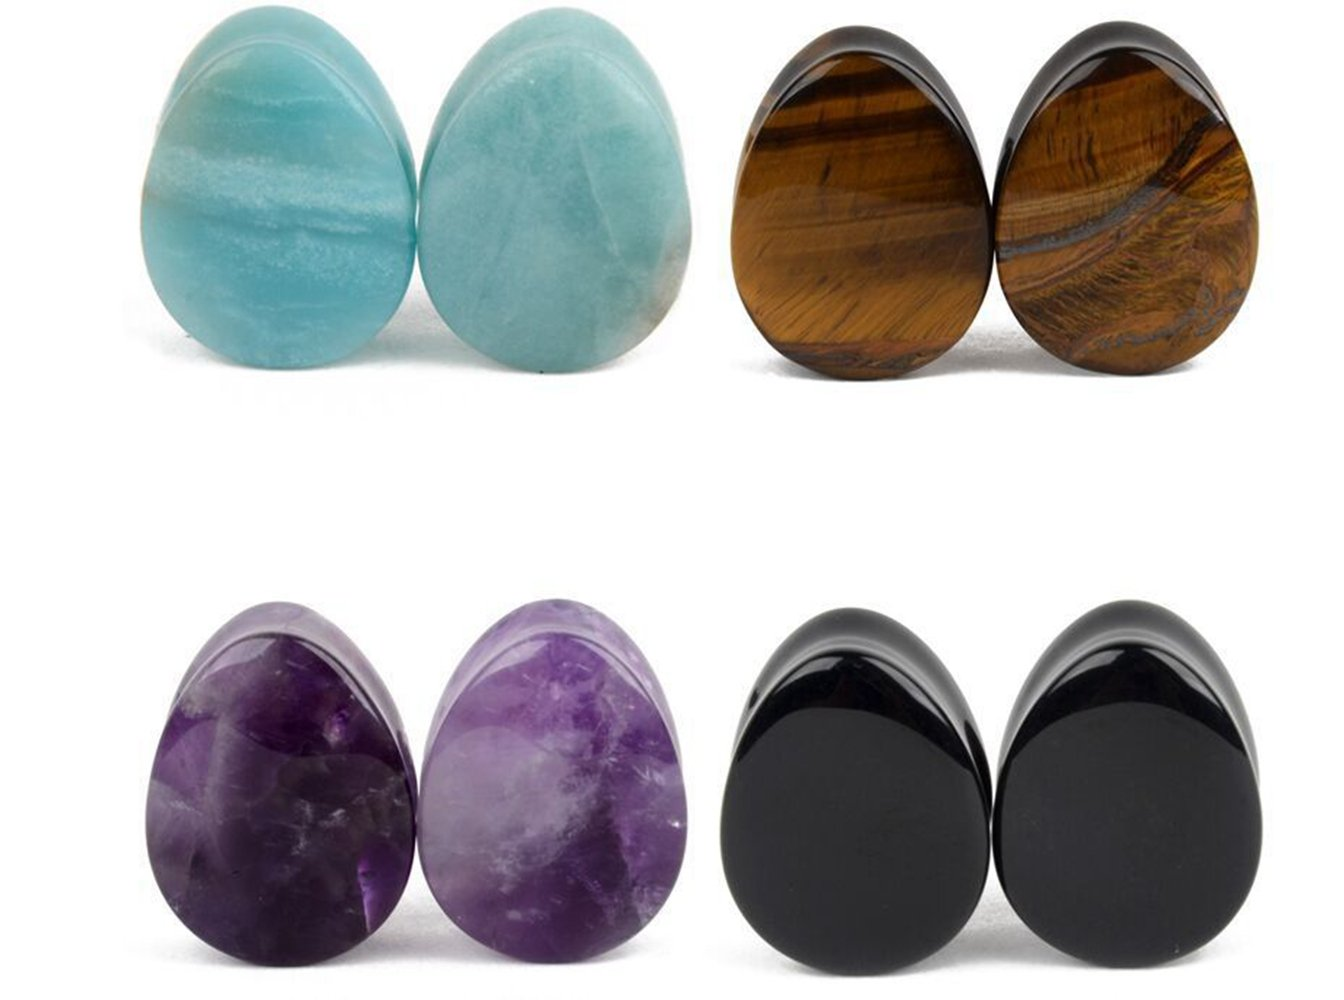 4 Pairs Natural Mixed Opalite Stone Plug Double Flared Flesh Tunnels Ear Stretcher Piercing Gauges (Guage=00g(10mm))